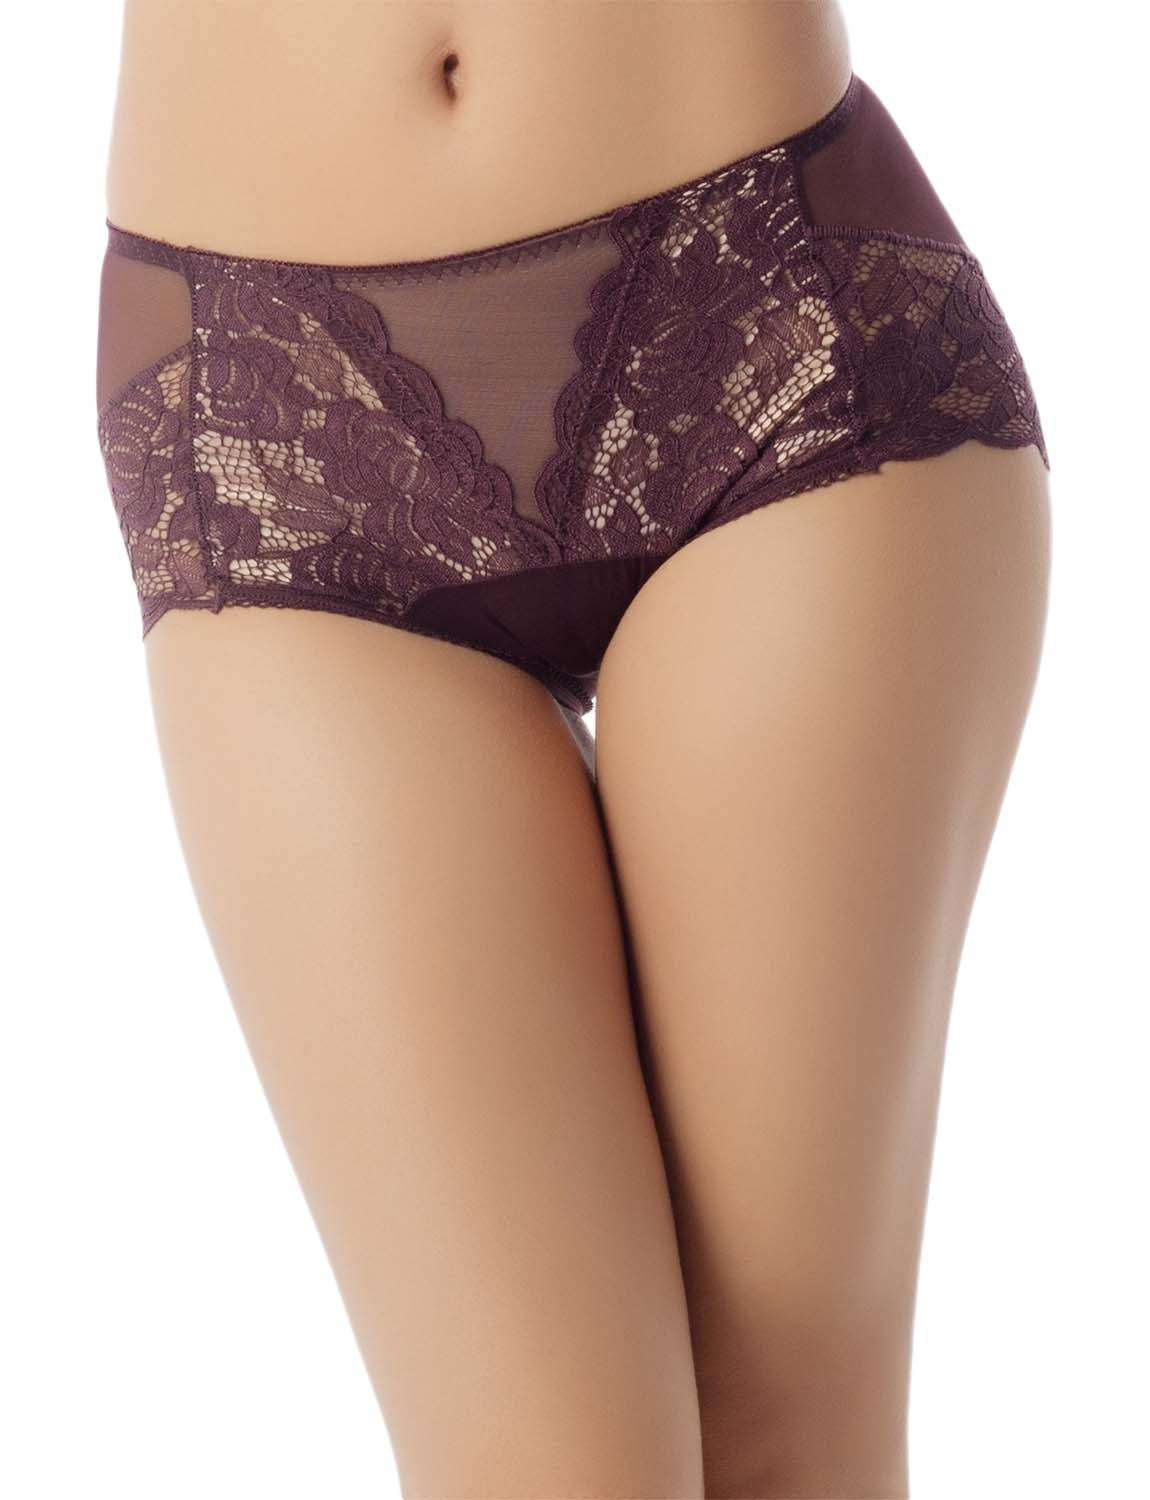 Women's Sexy Lace See-Through Hot Sheer Bare Butt Mid Waist Hipster Panty, Size: L, Dark Brown